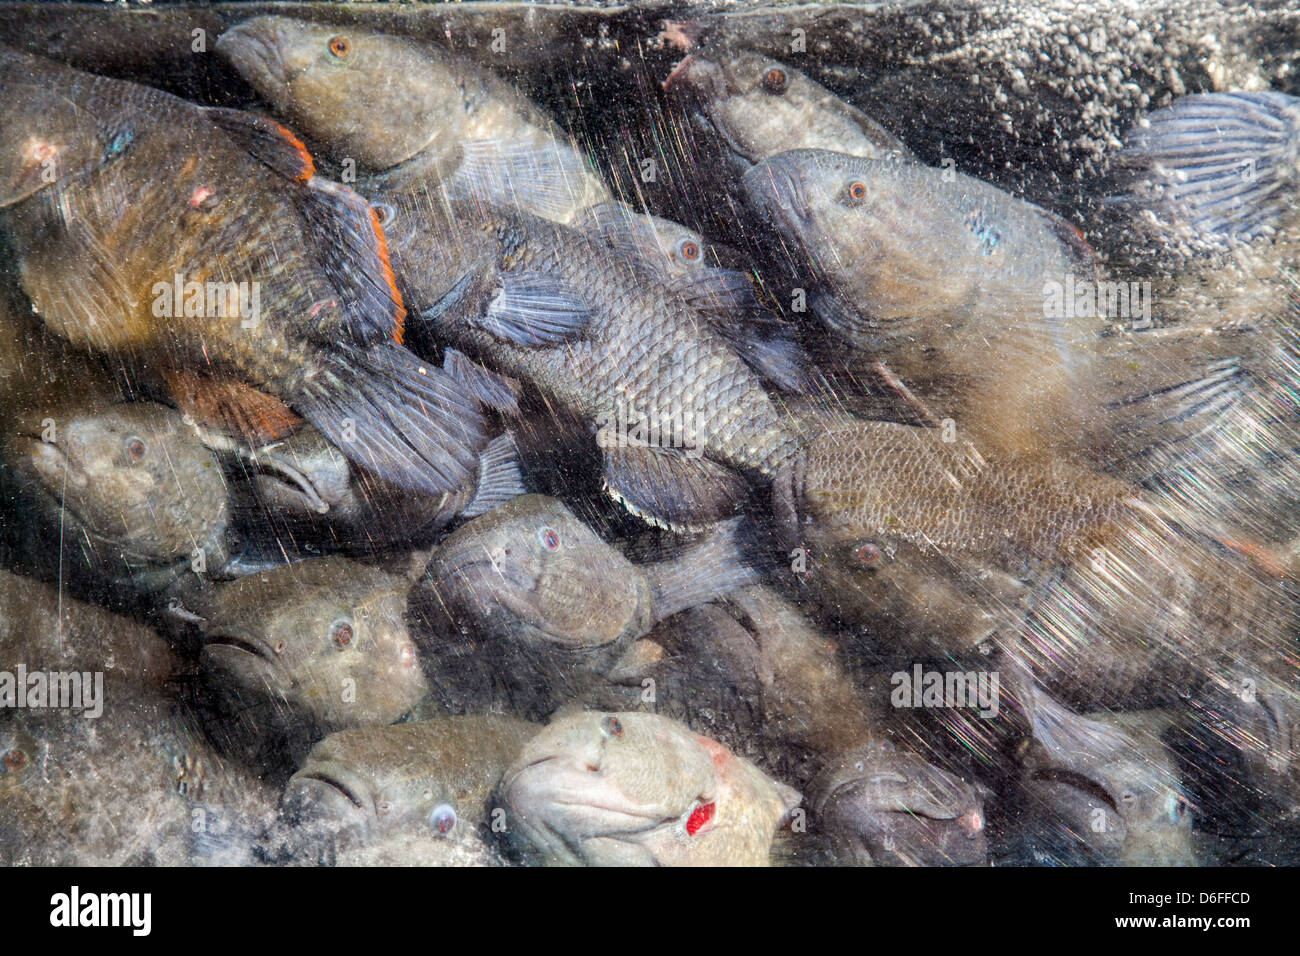 Fish in tank await fate at restaurant, Chinatown, New York City - Stock Image